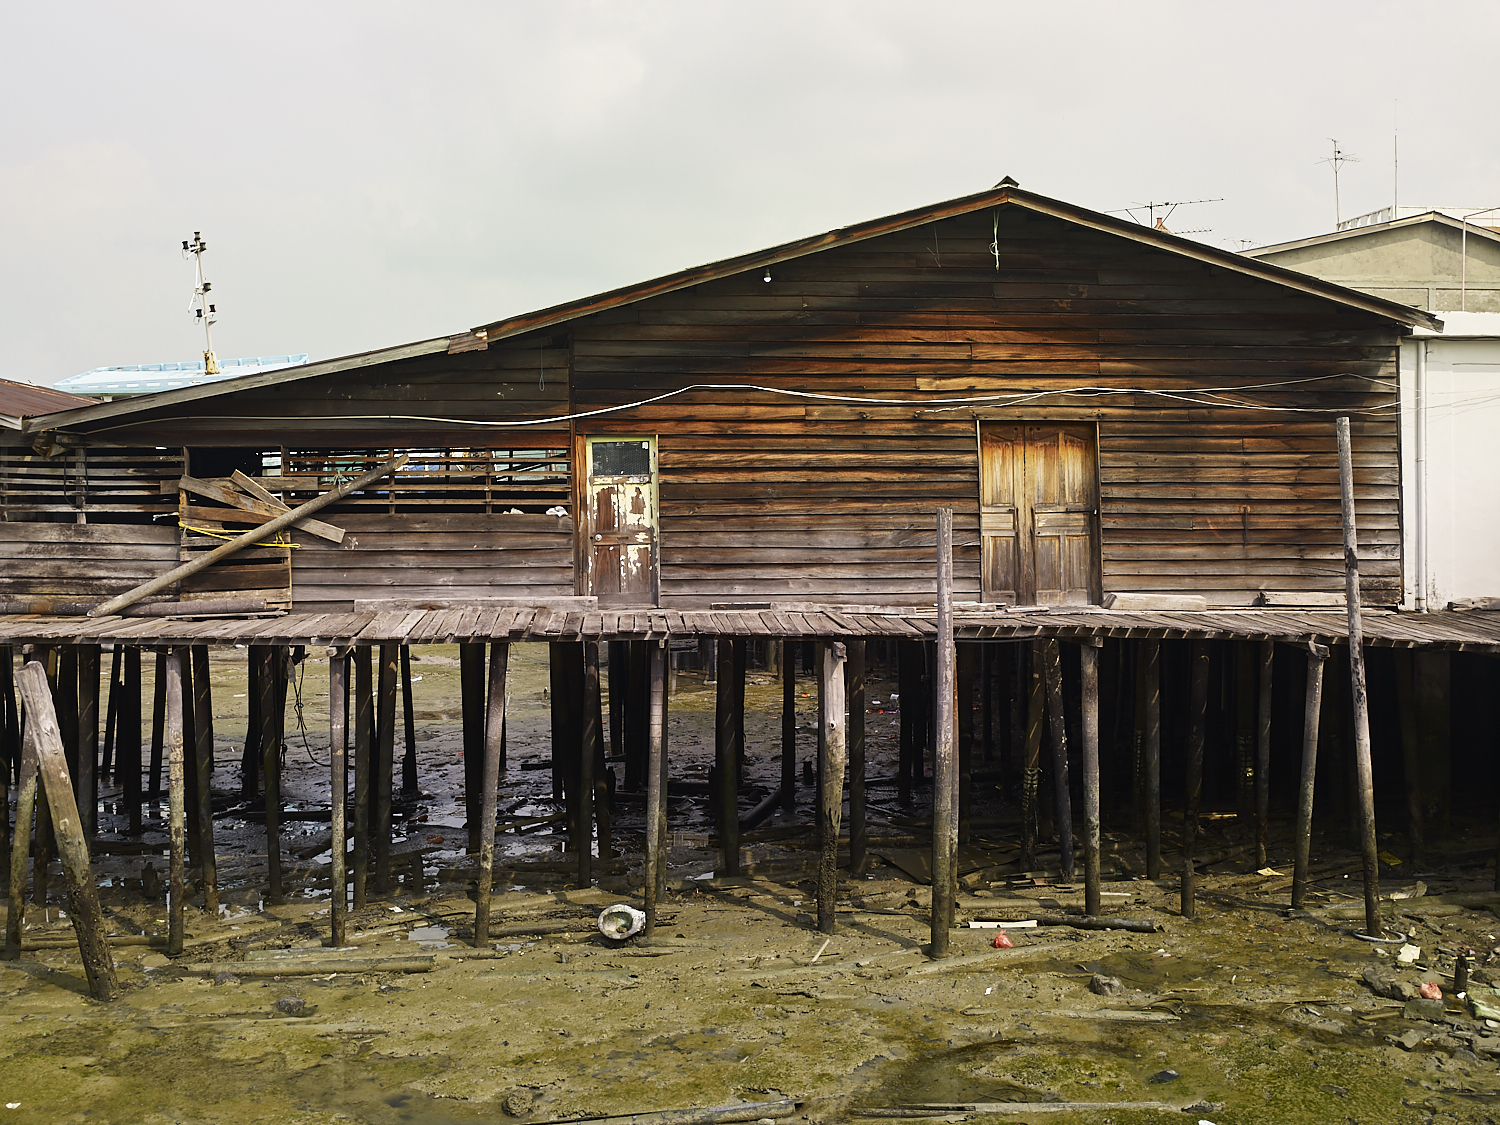 Tanjungpinang, Riau Islands, Indonesia, 2016